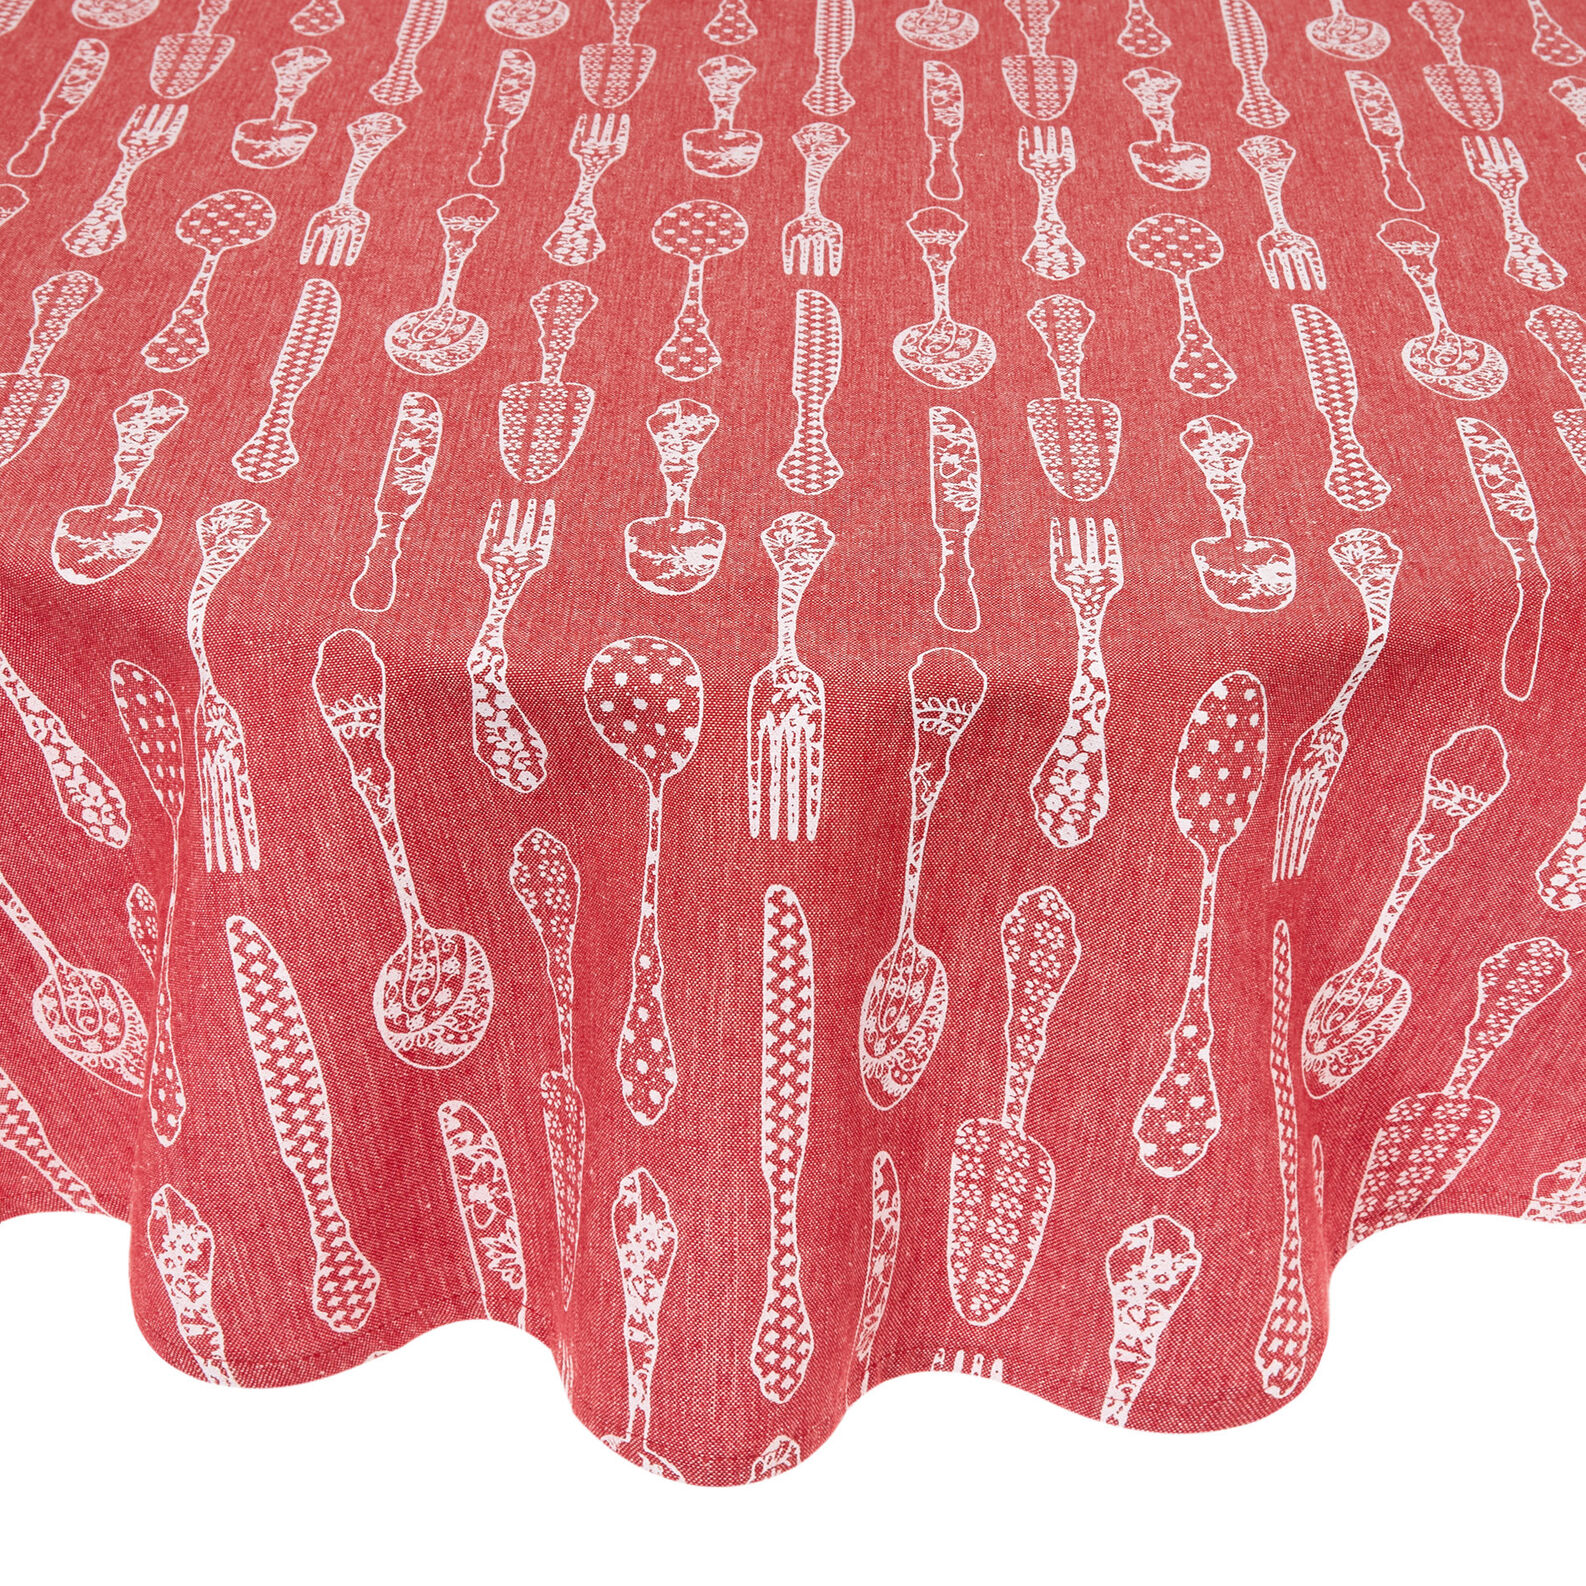 Round 100% cotton tablecloth with cutlery print